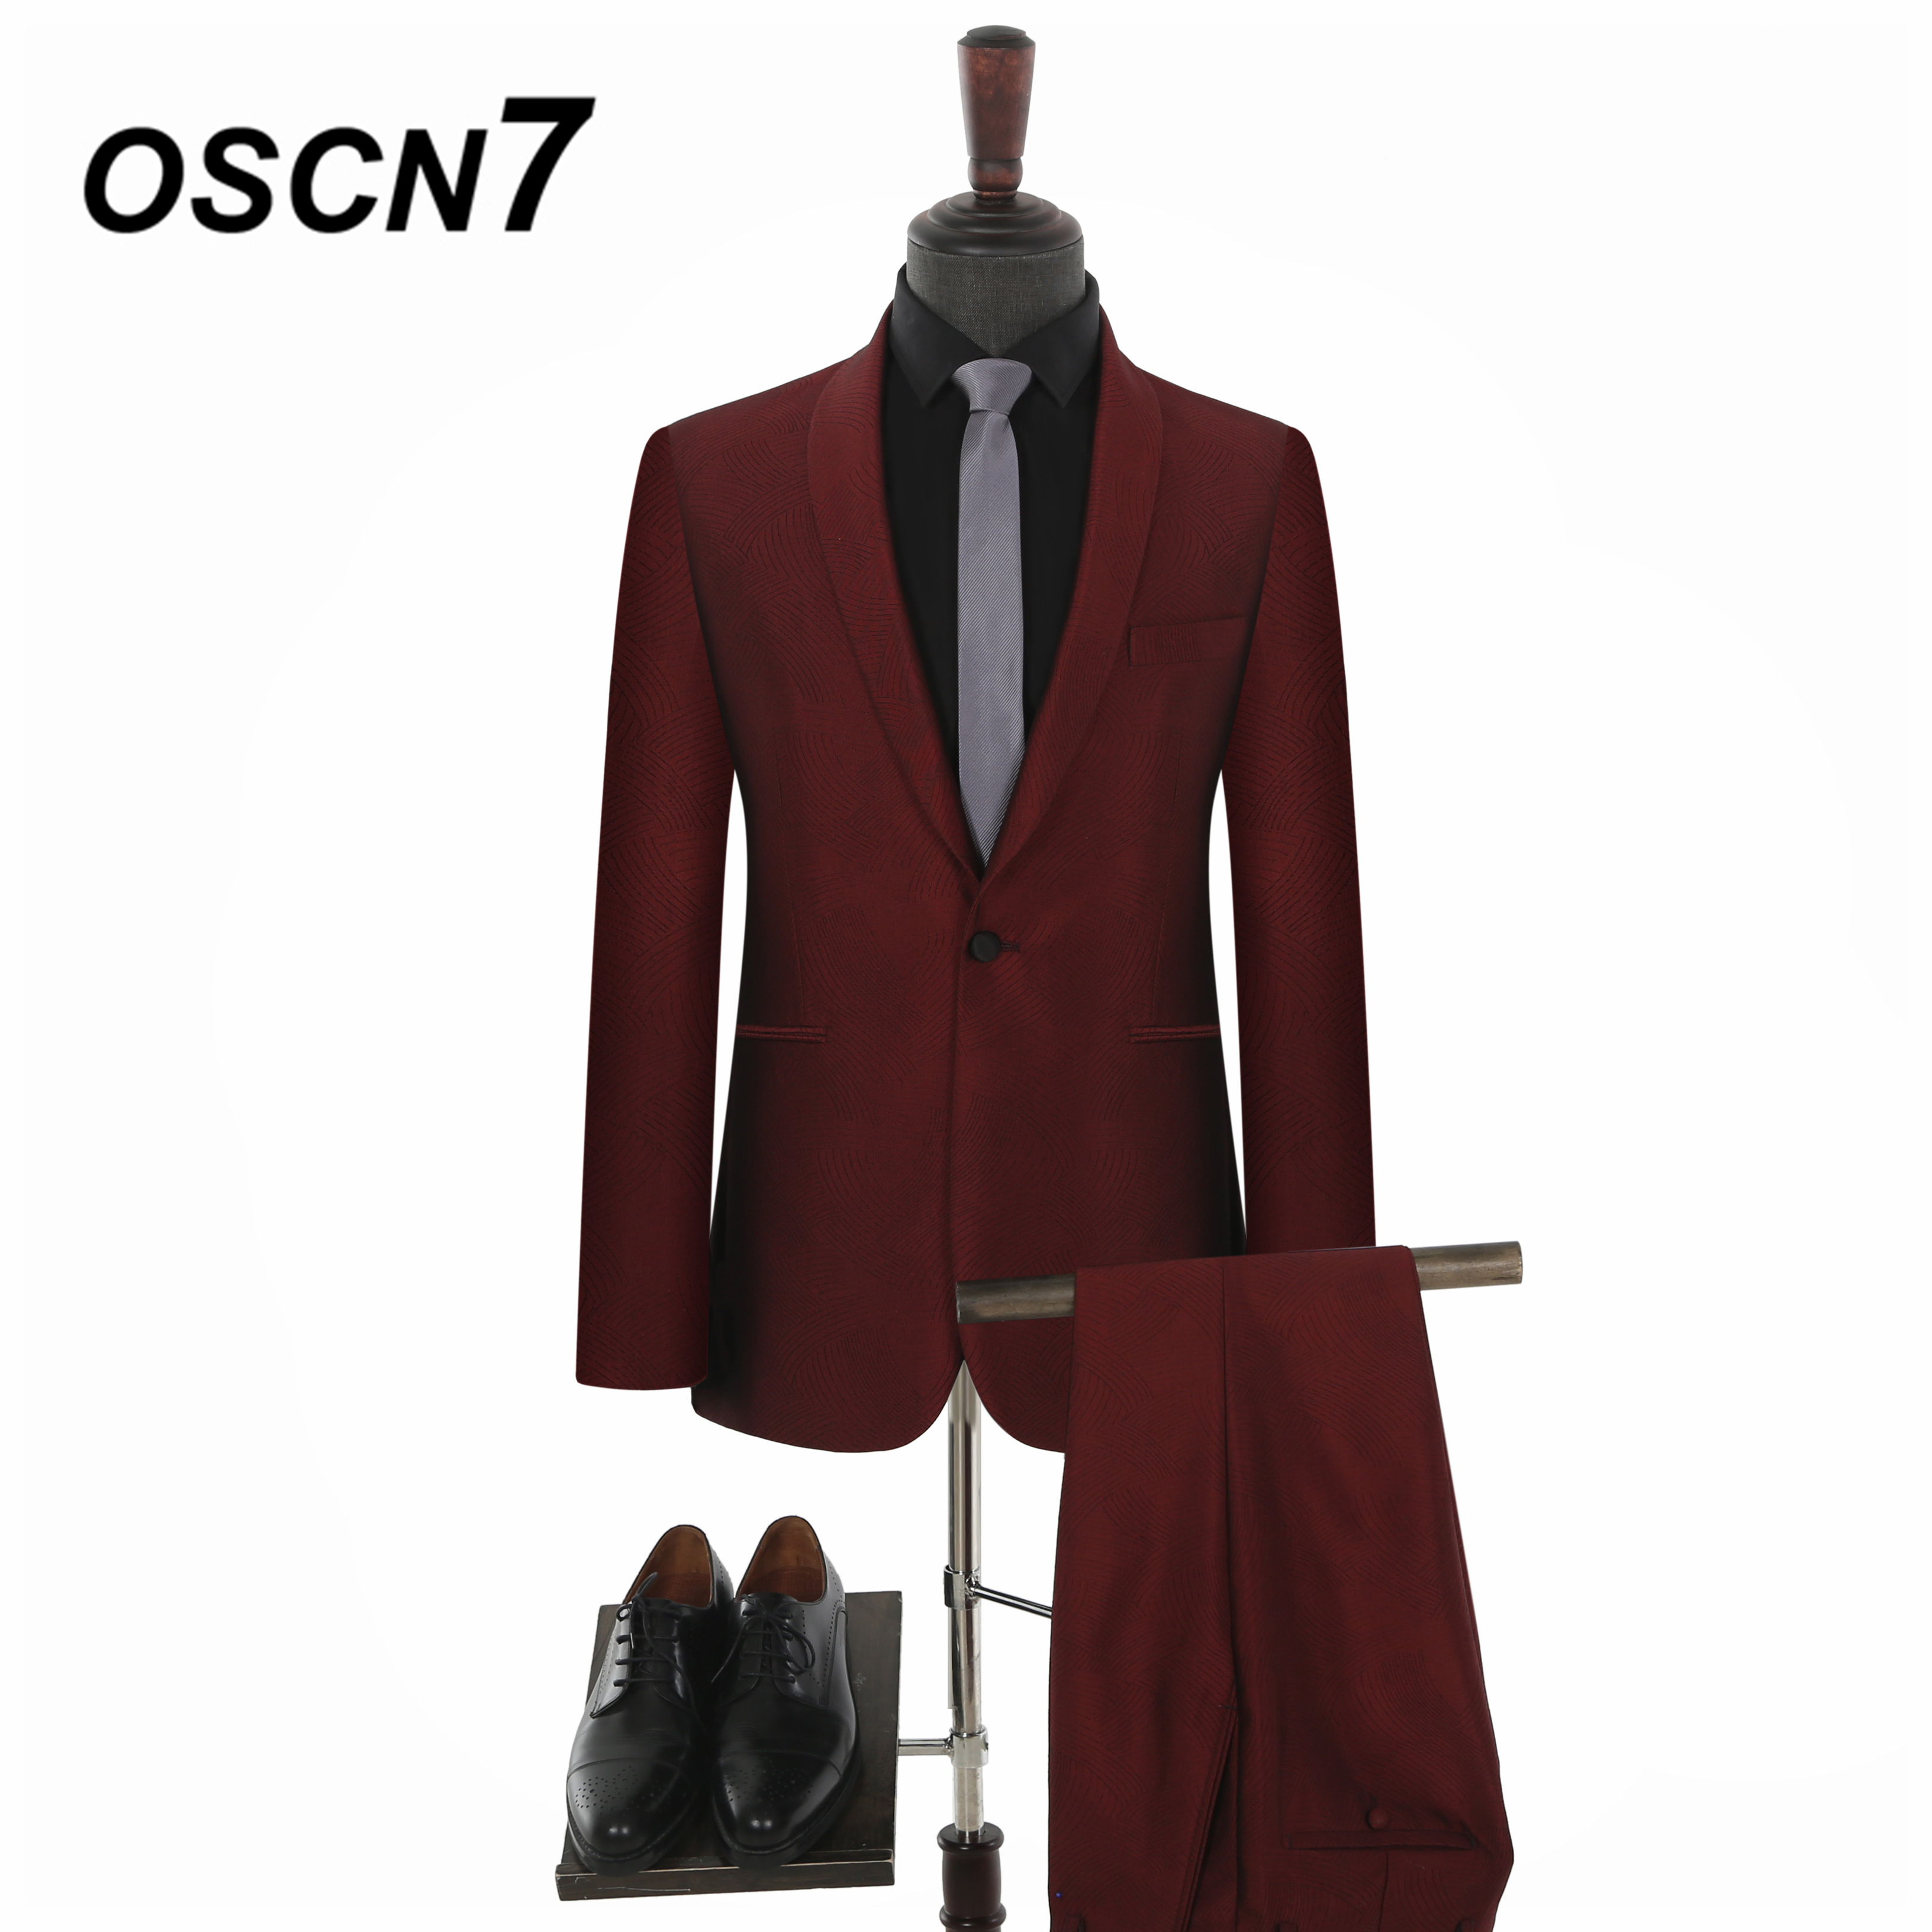 OSCN7 Plain Shawl Lapels Groom wedding Tailor Made Suits 2PC